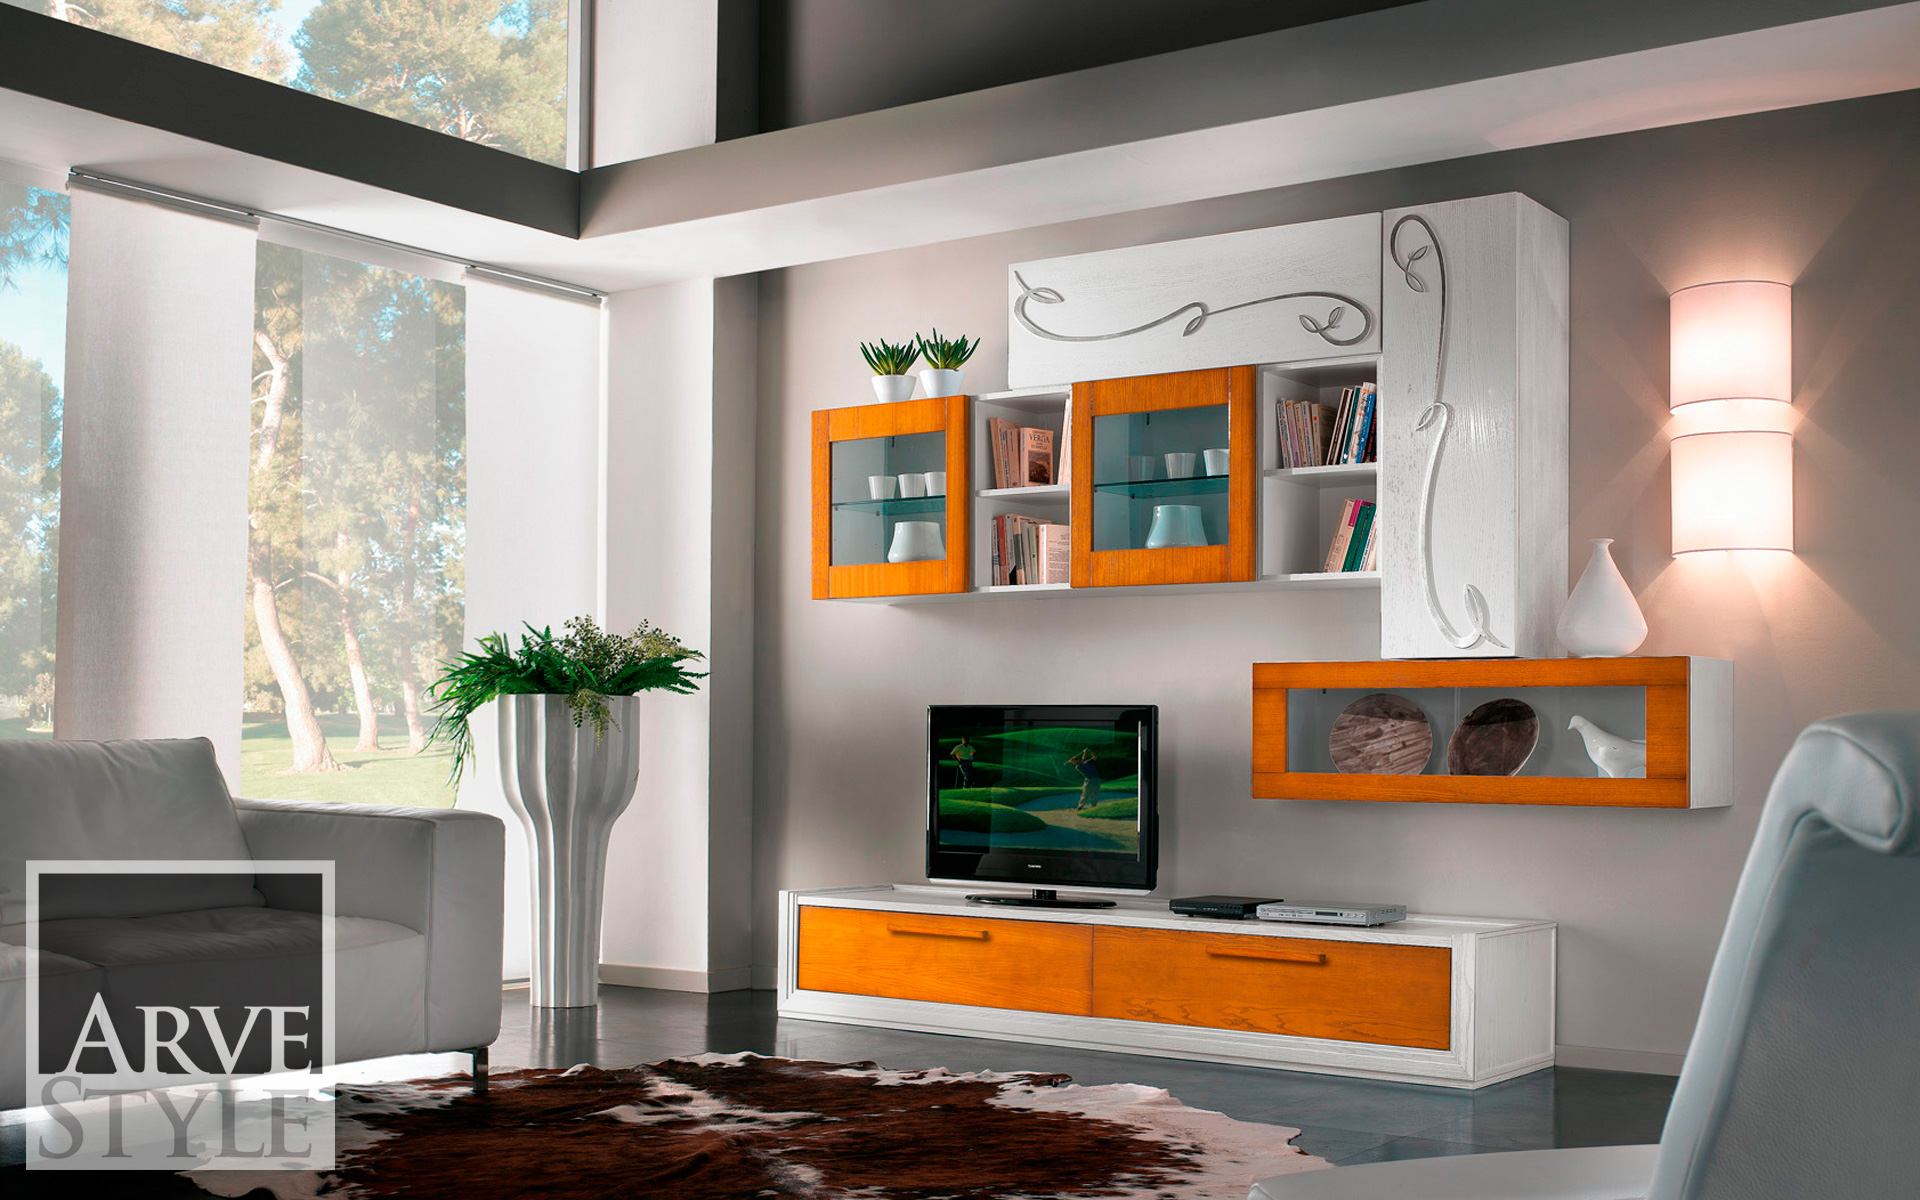 Mobili porta tv e accessori design casa creativa e mobili ispiratori - Accessori design casa ...